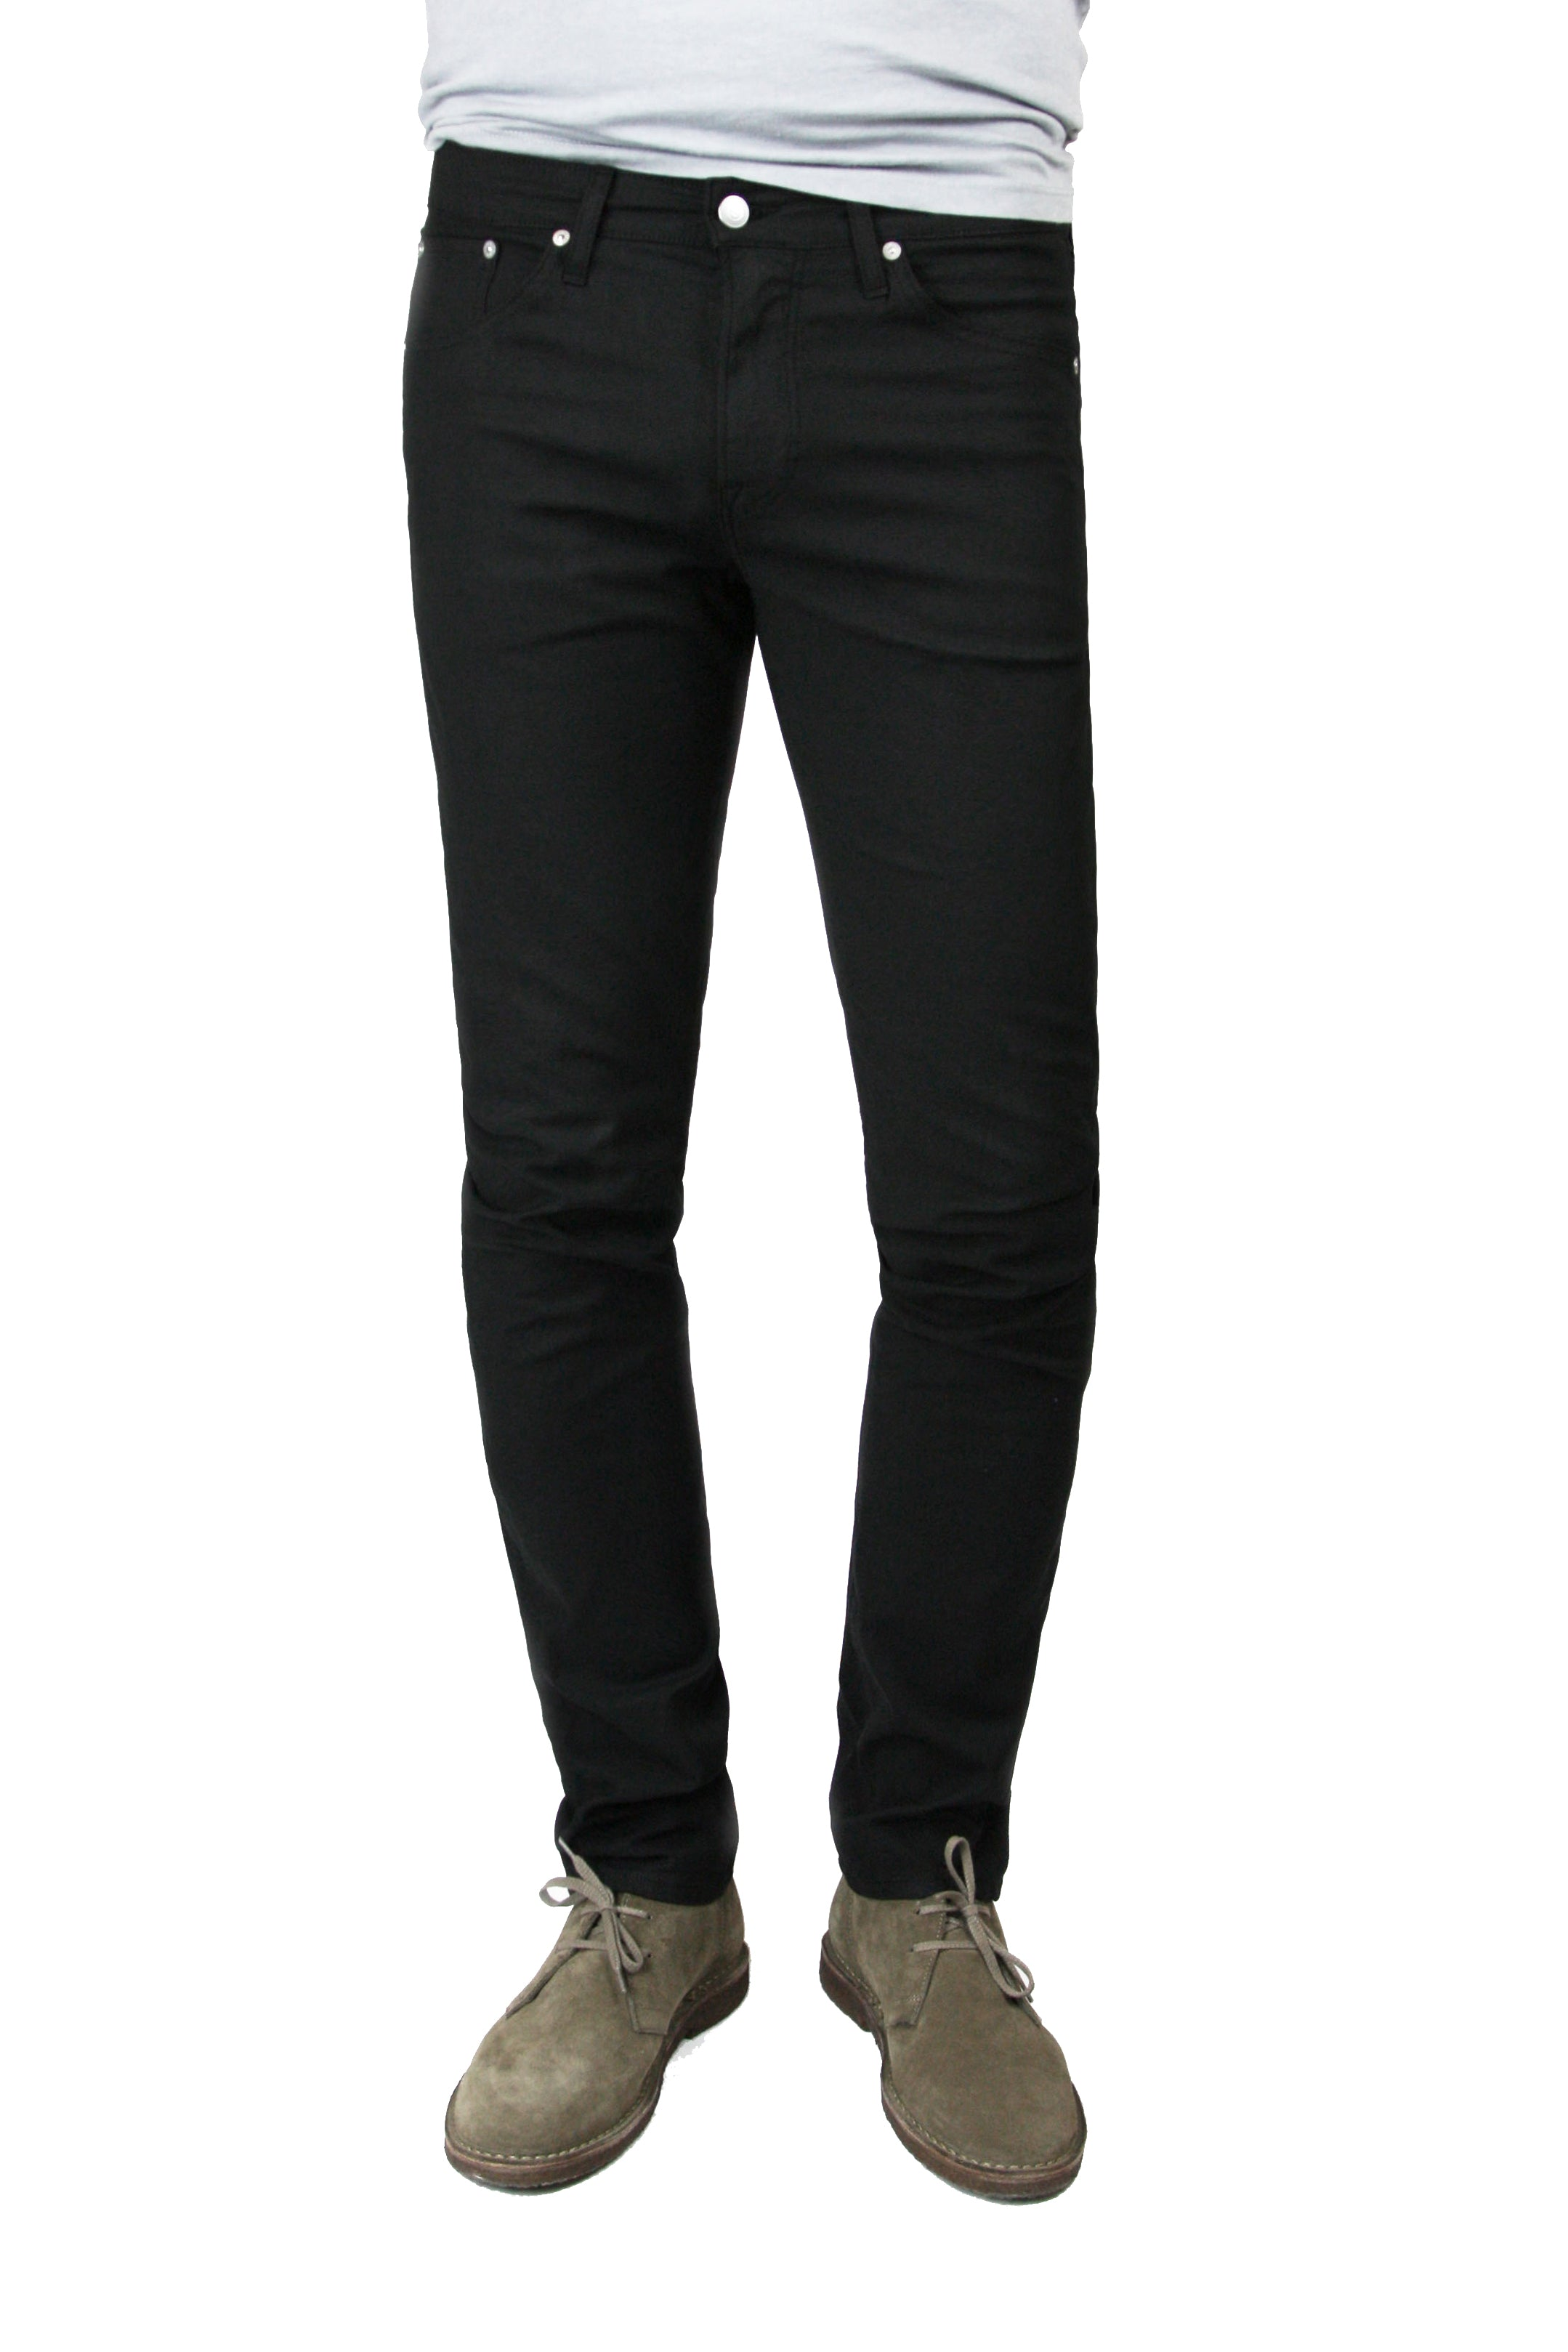 "S.M.N Studio's Finn in Black Men's Twill pants in a 30"" Inseam. Tapered slim comfort stretch twill pants dyed in black"